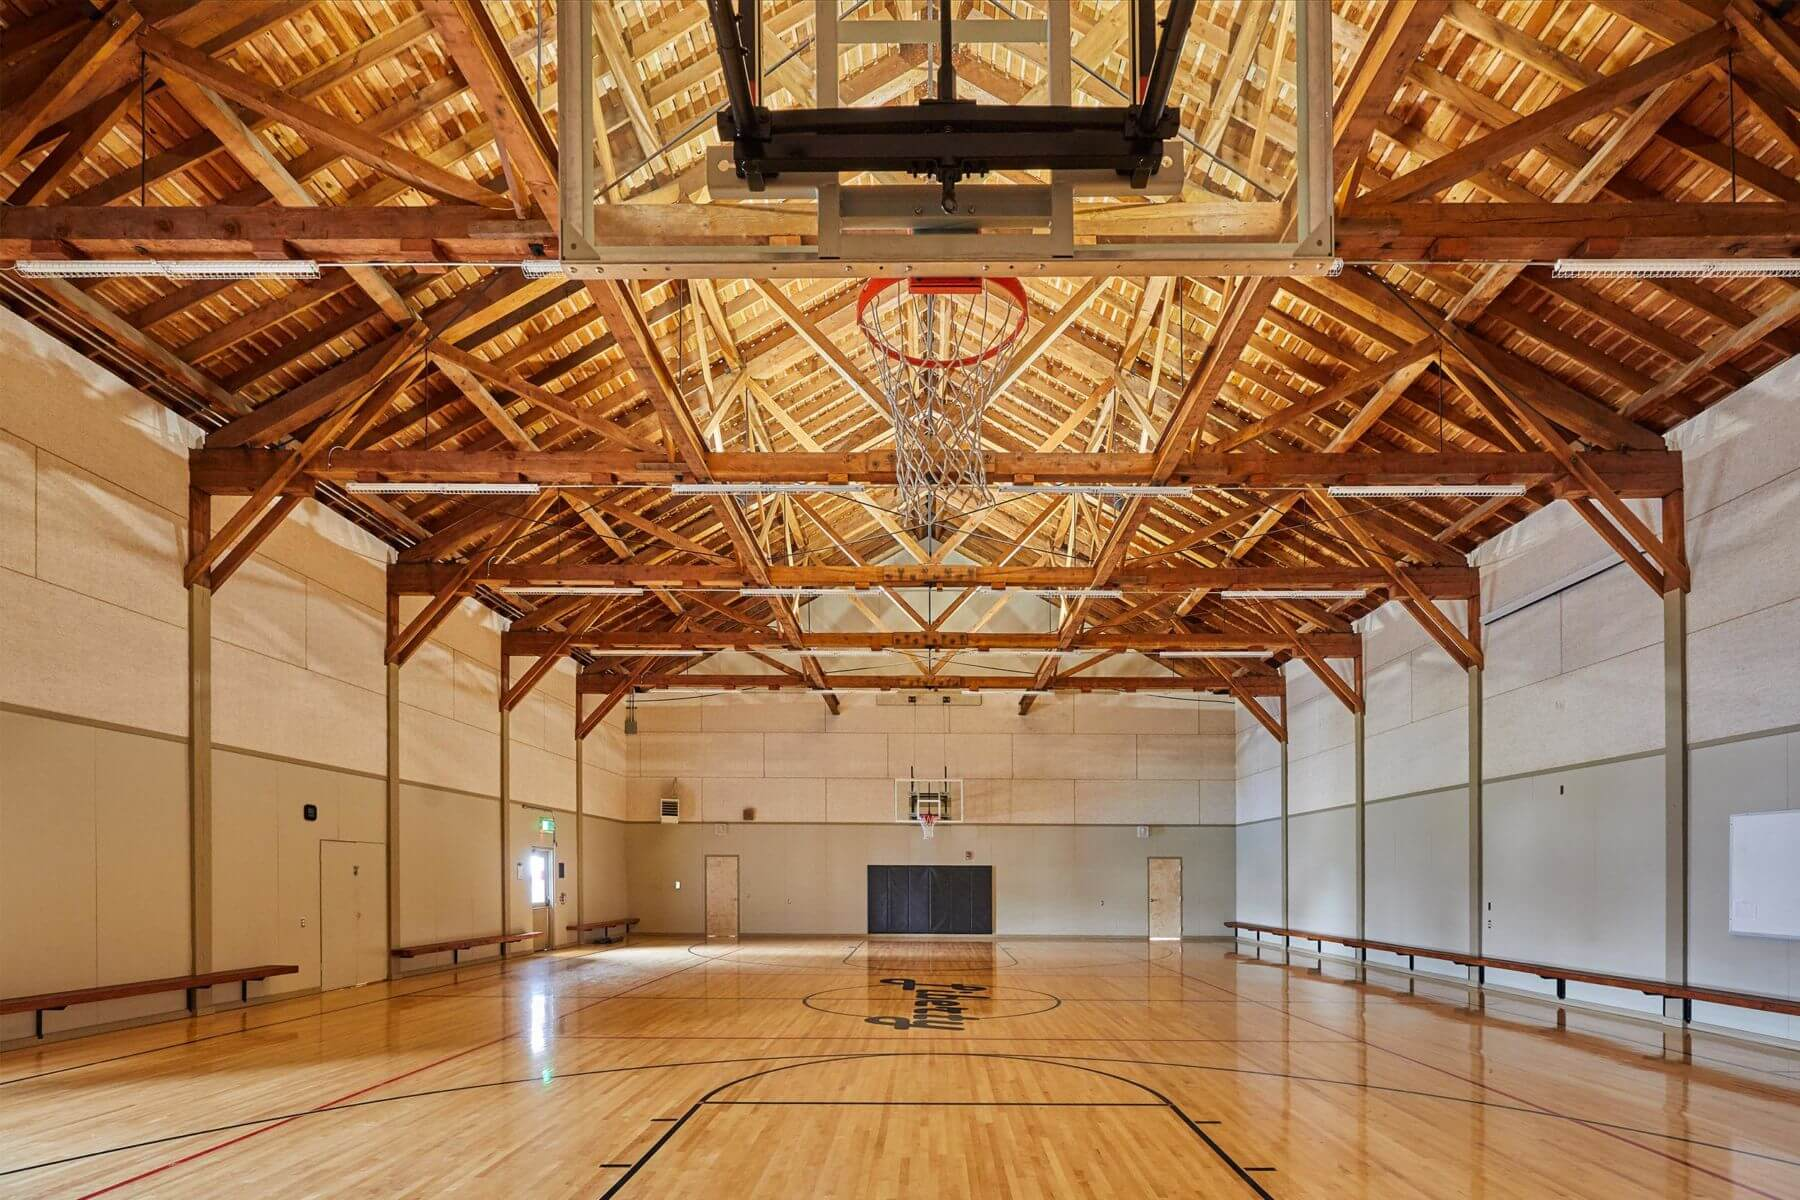 Liberty Elementary School Gymnasium - Tillamook, OR | <em>Structural Engineering</em>